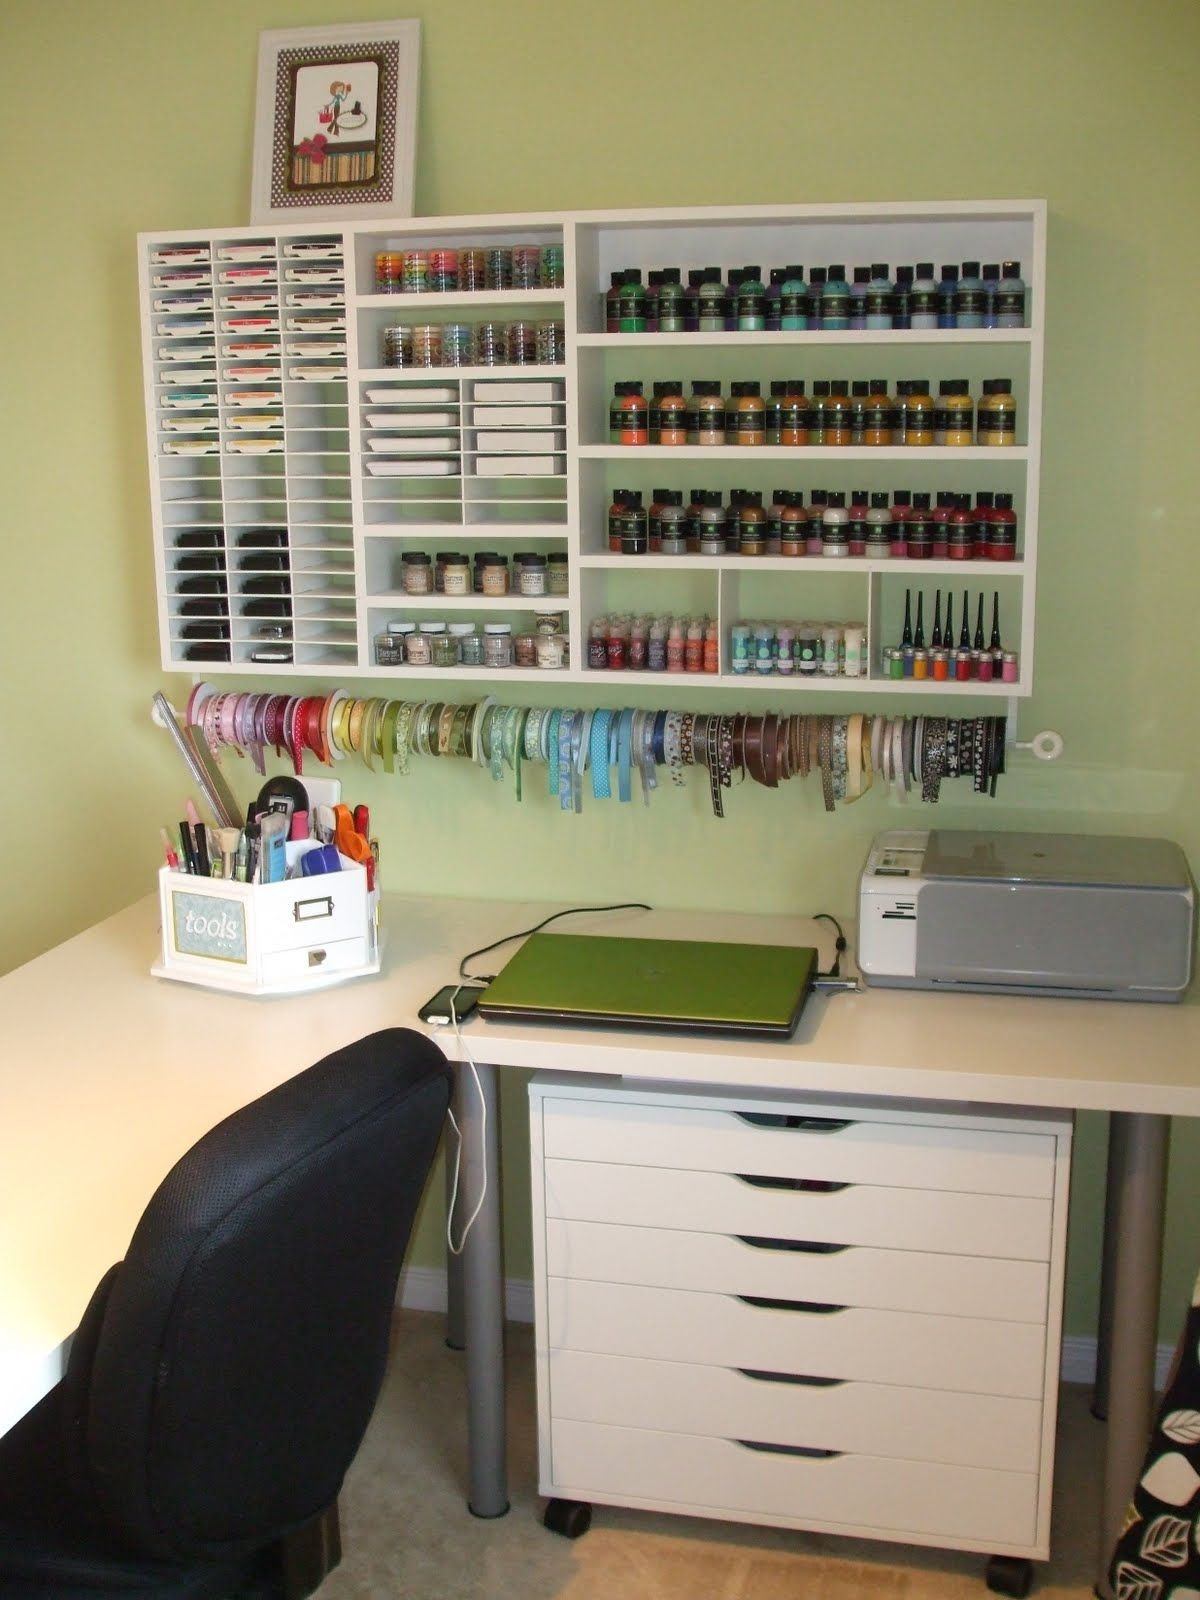 Rangements Studio Scrapbooking Room I Want That Filled With Nail Polish And